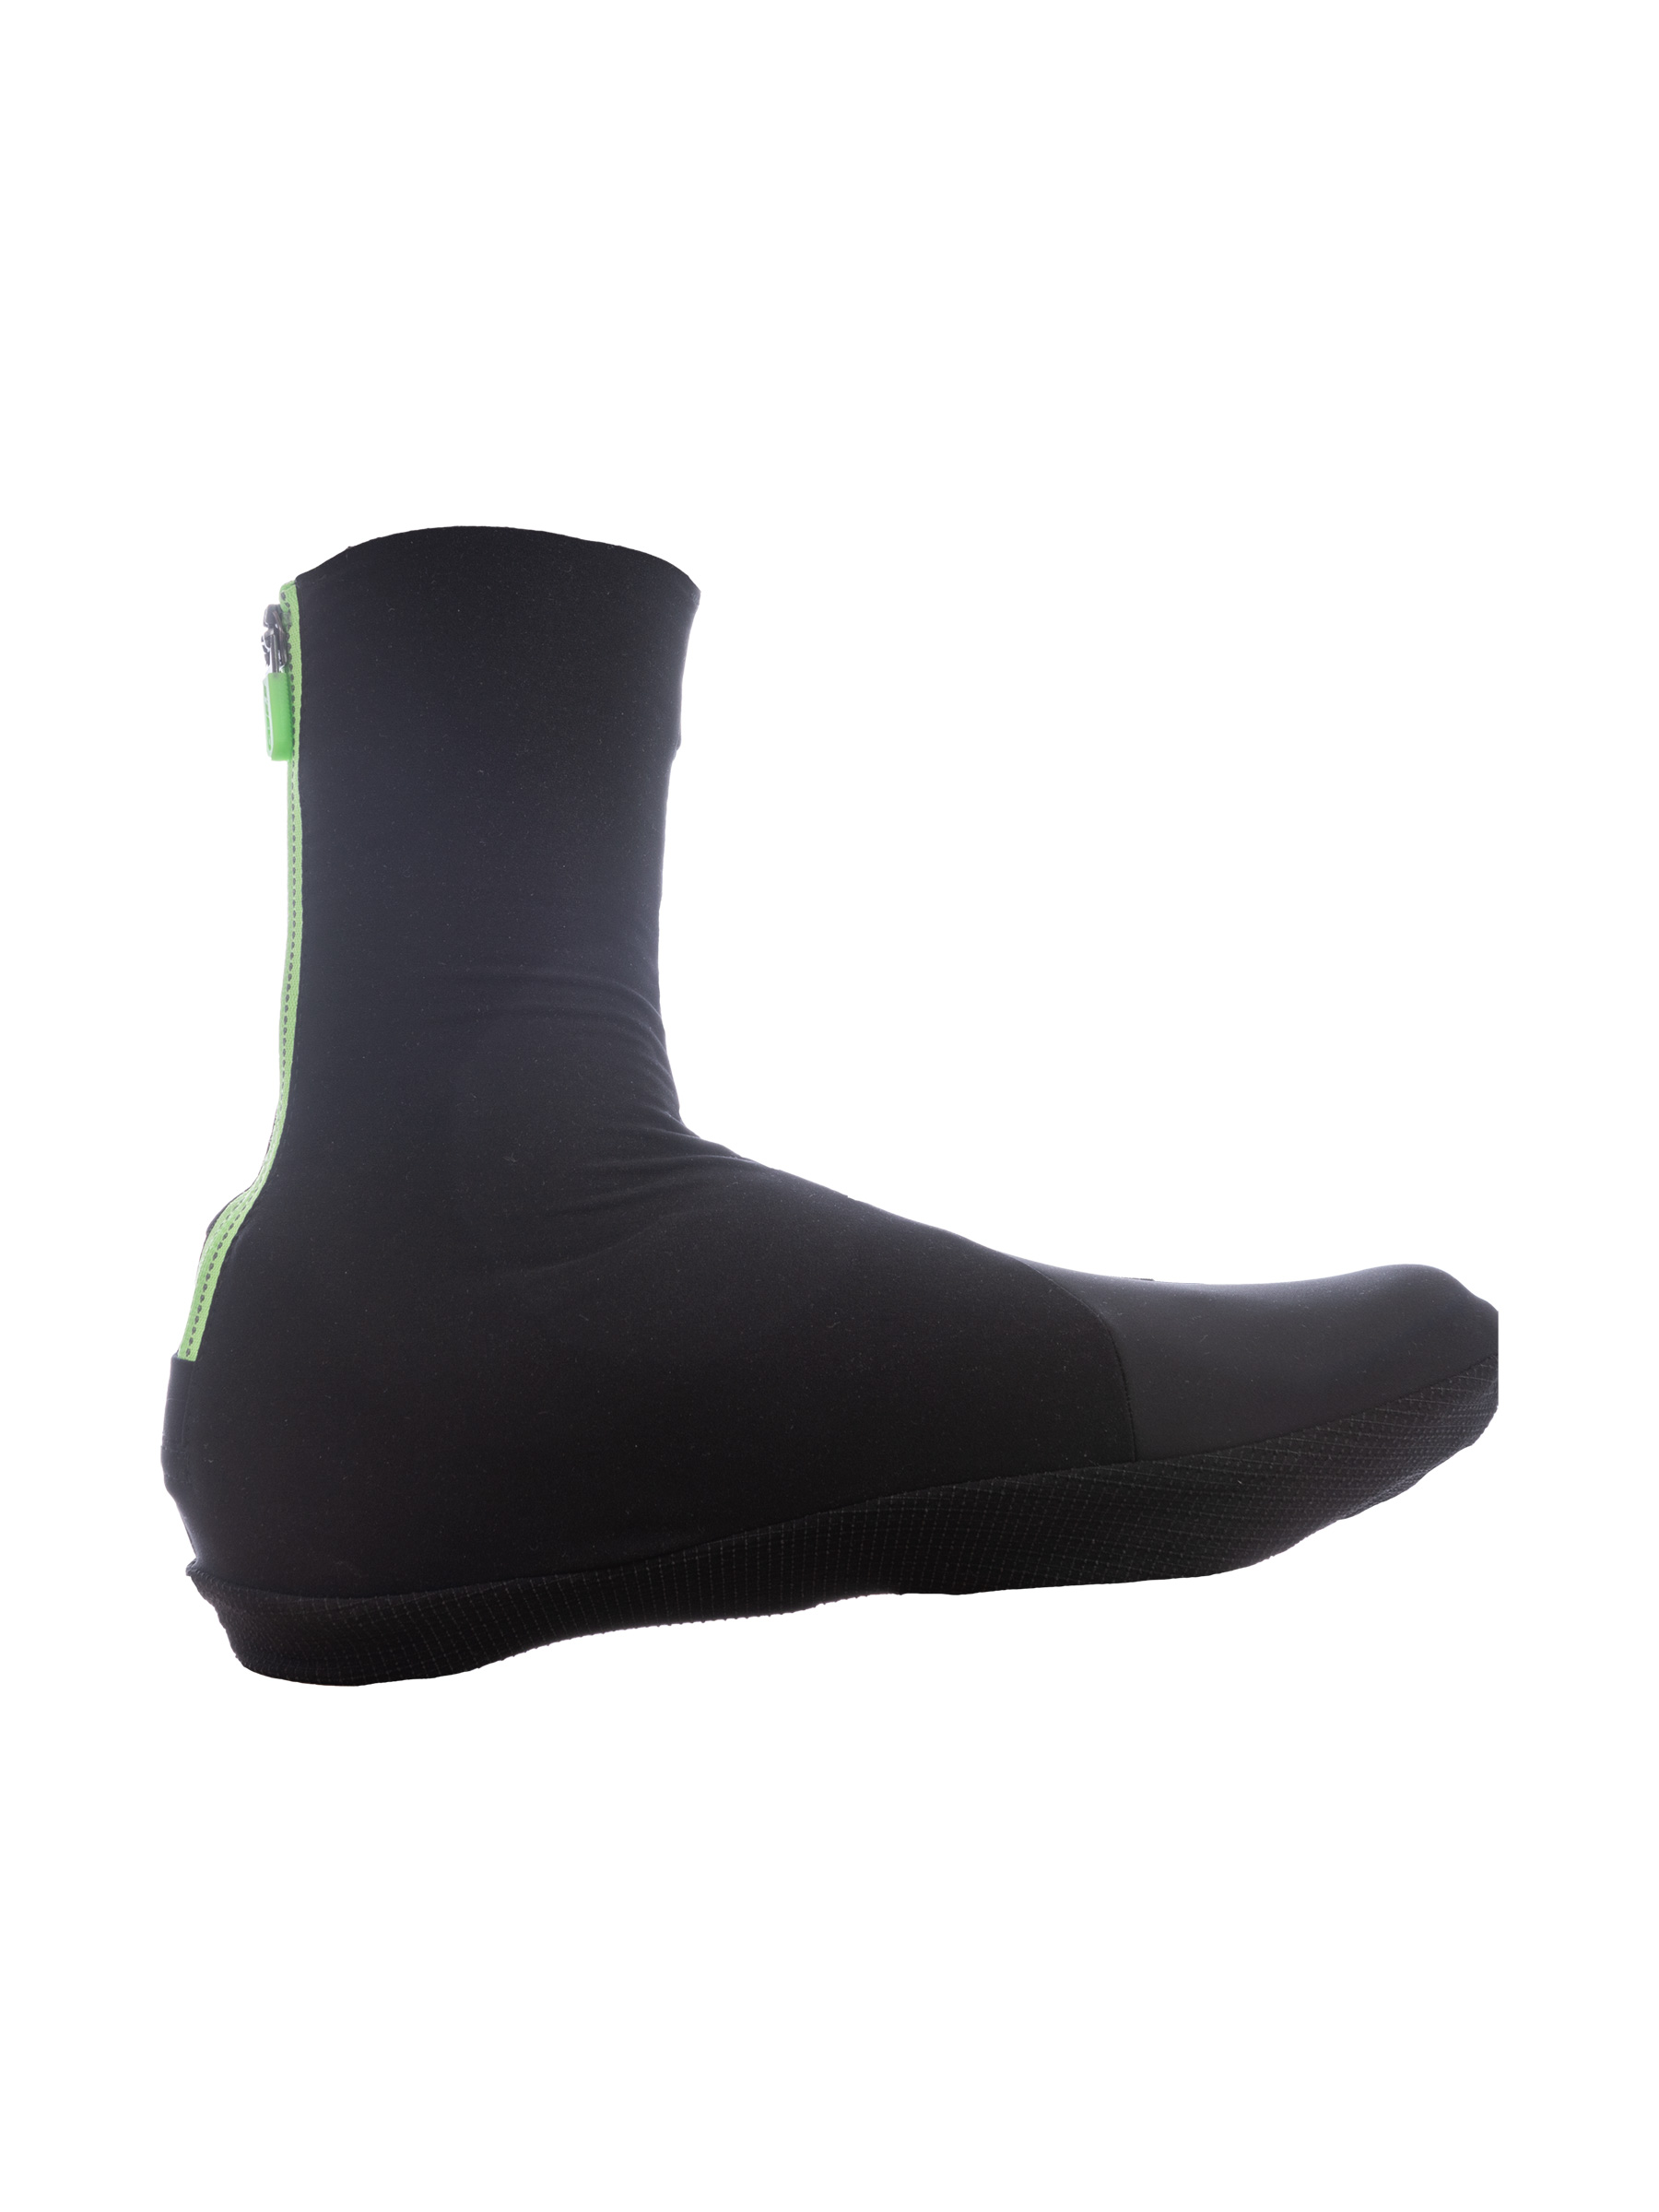 Termico Overshoes New